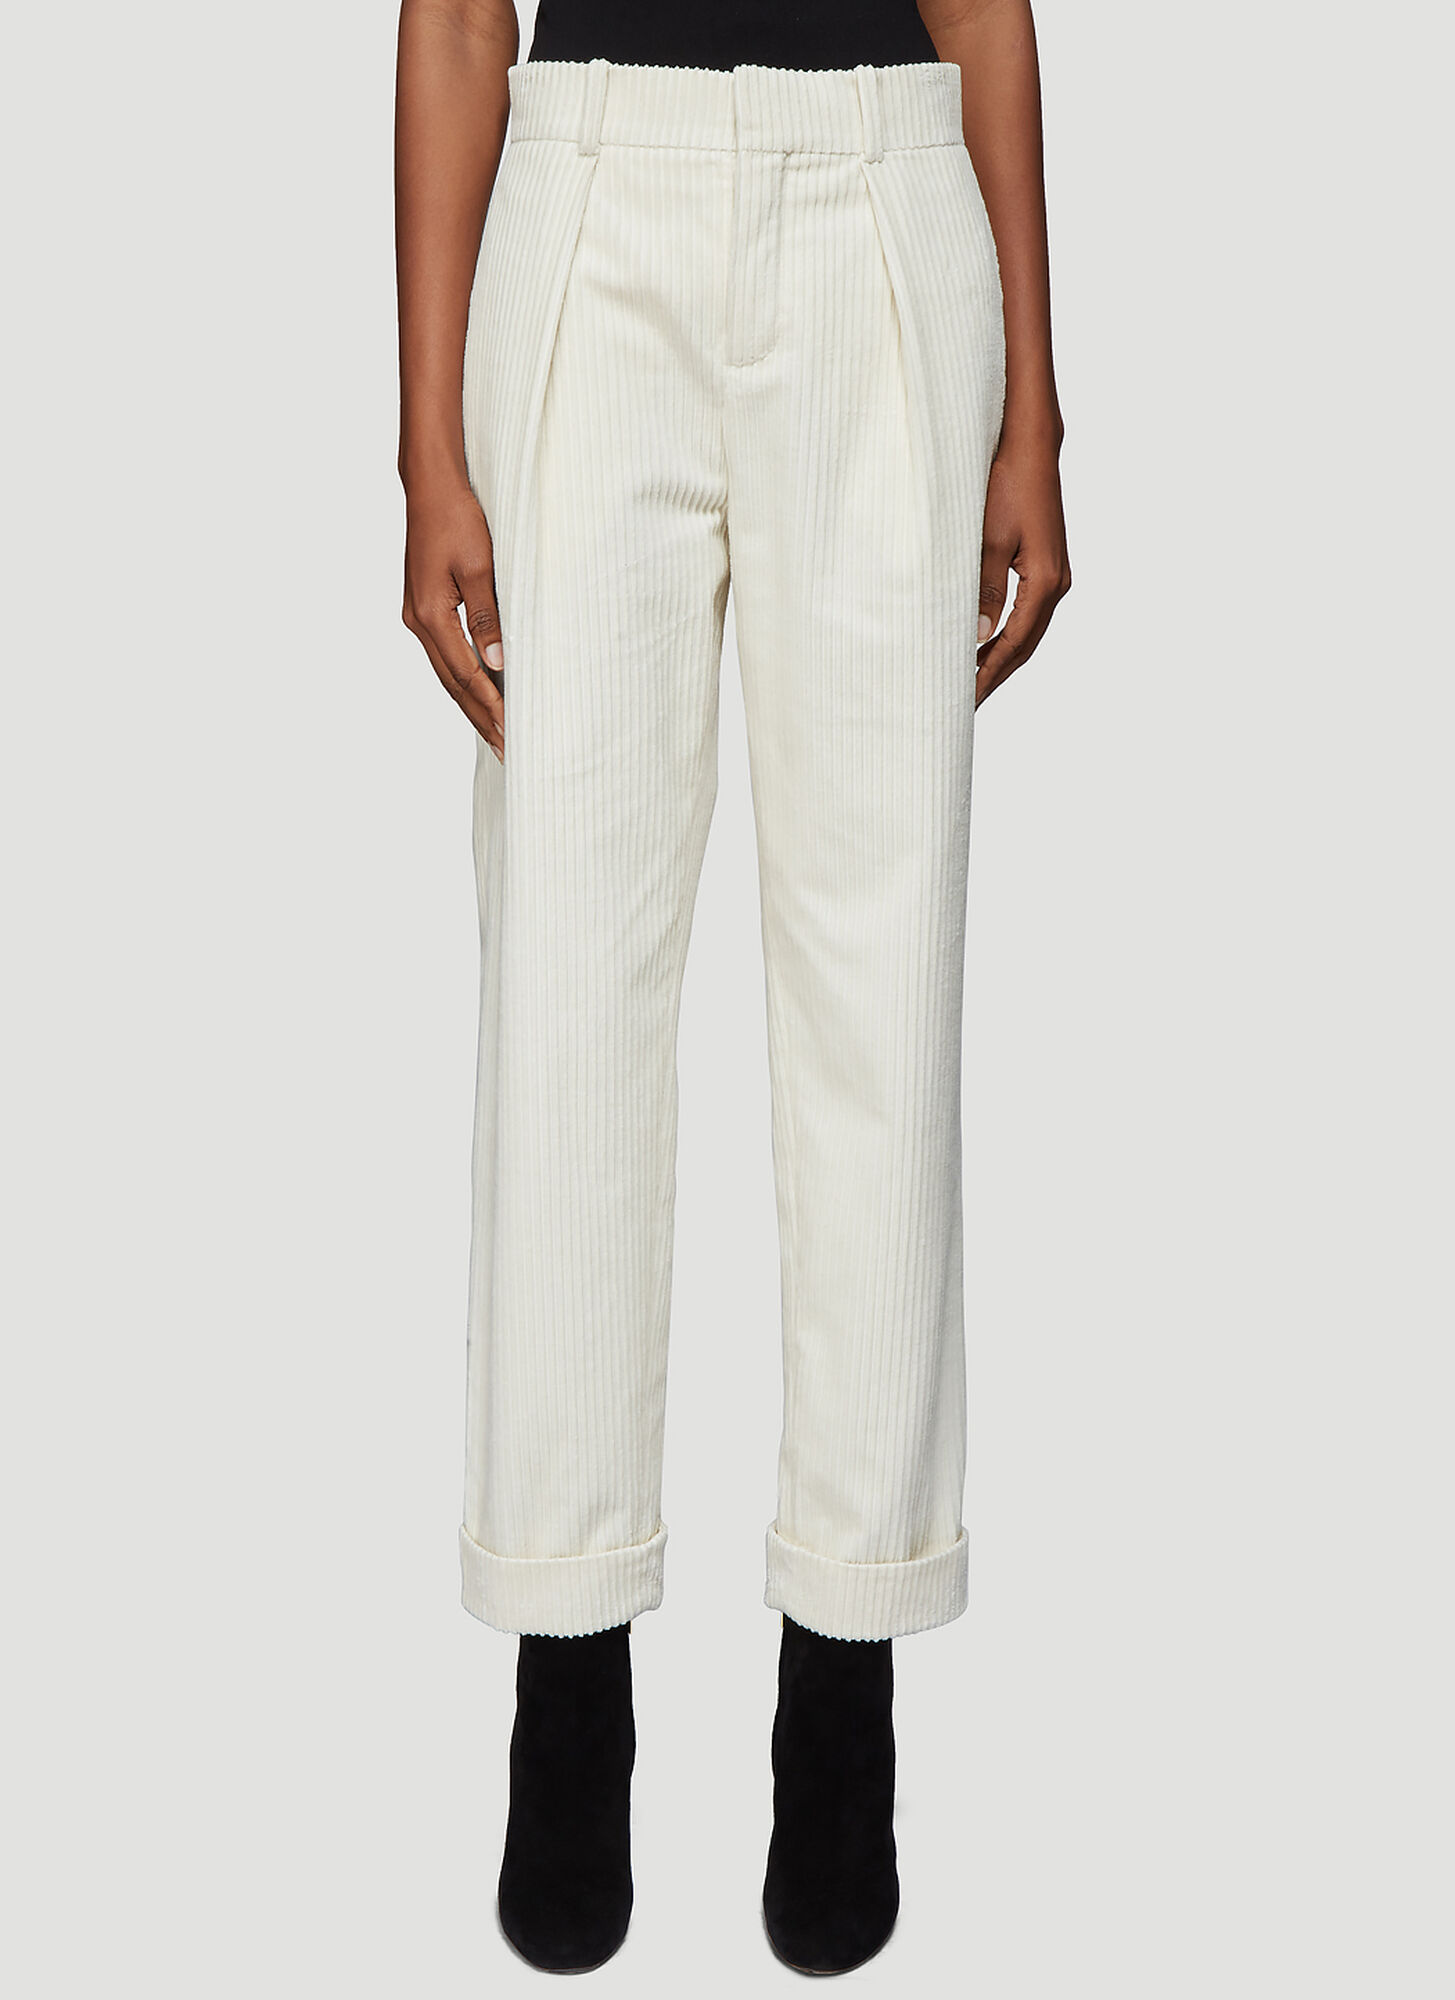 Saint Laurent Corduroy Pants in White